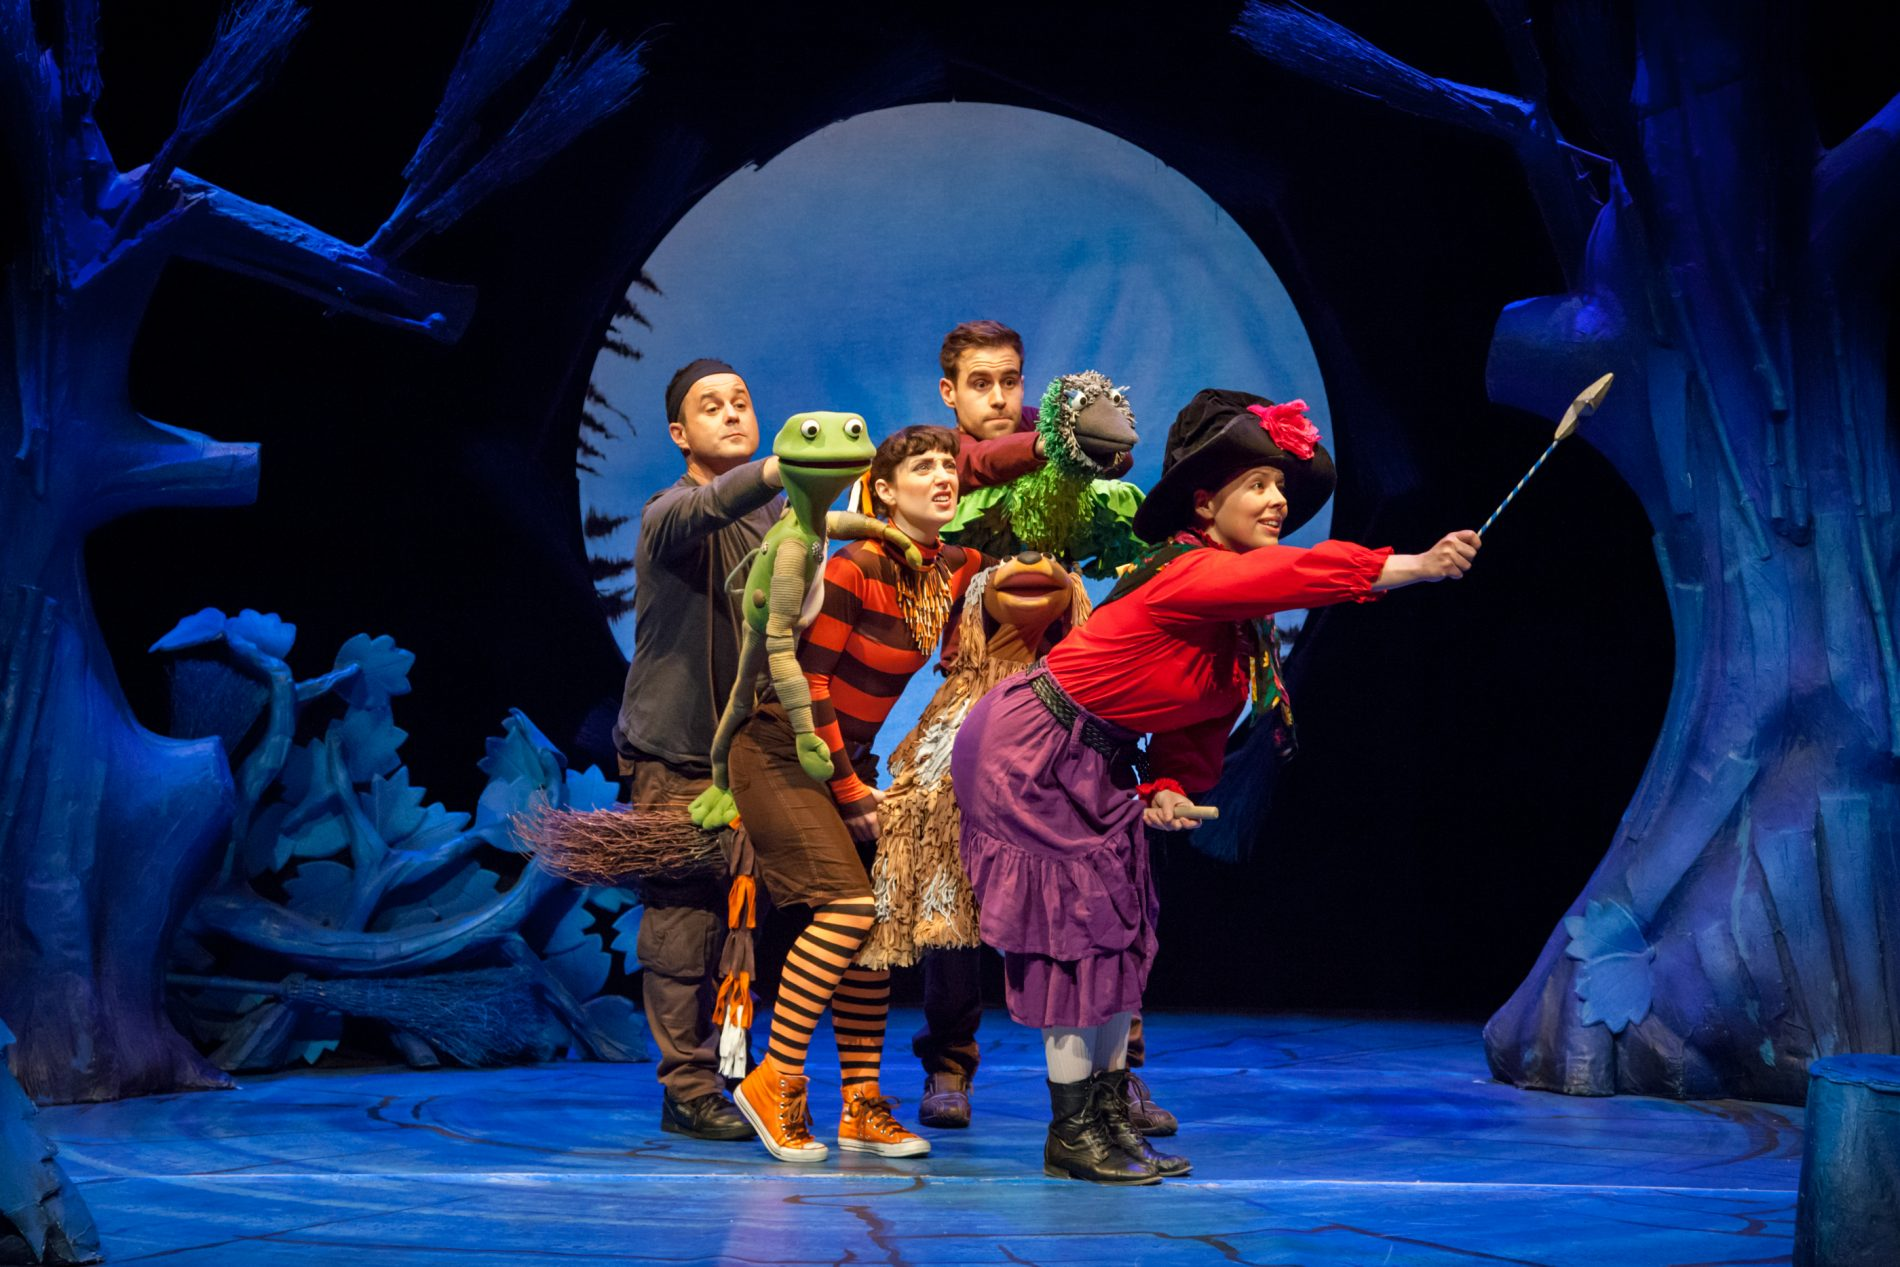 West End Show review: Room on the Broom - London Mums Magazine